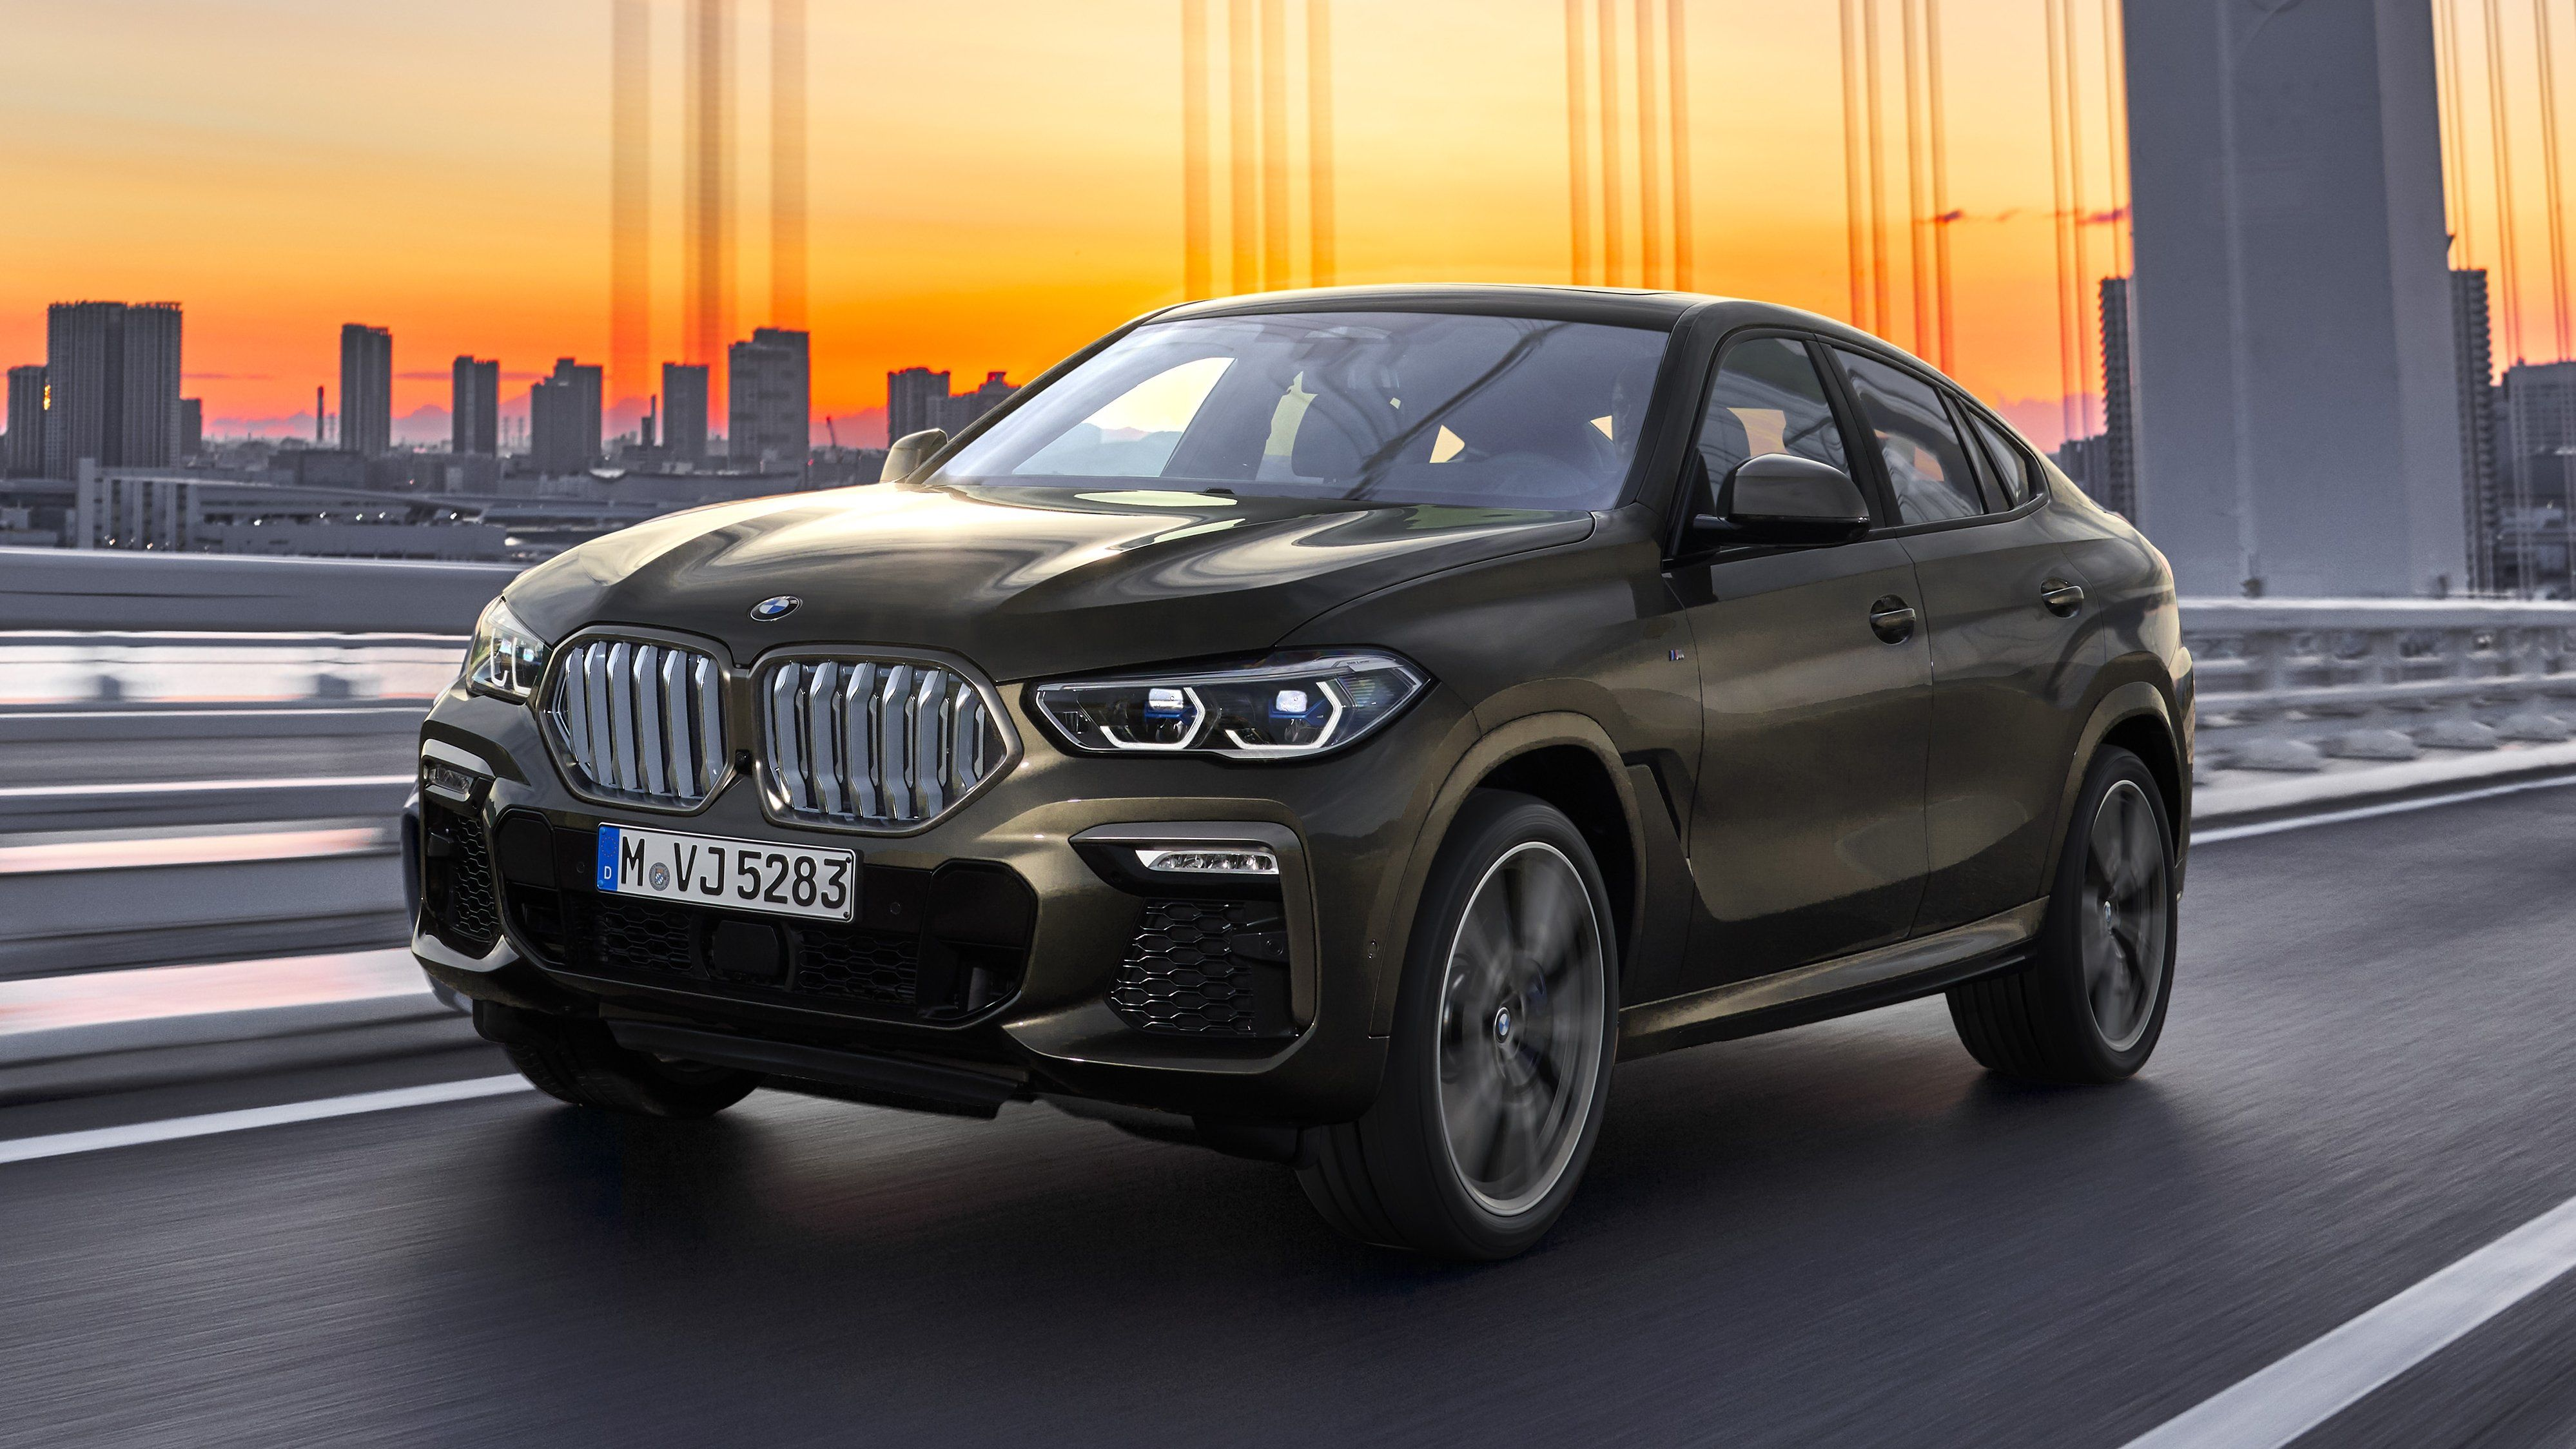 Bmw X6 Wallpapers Top Free Bmw X6 Backgrounds